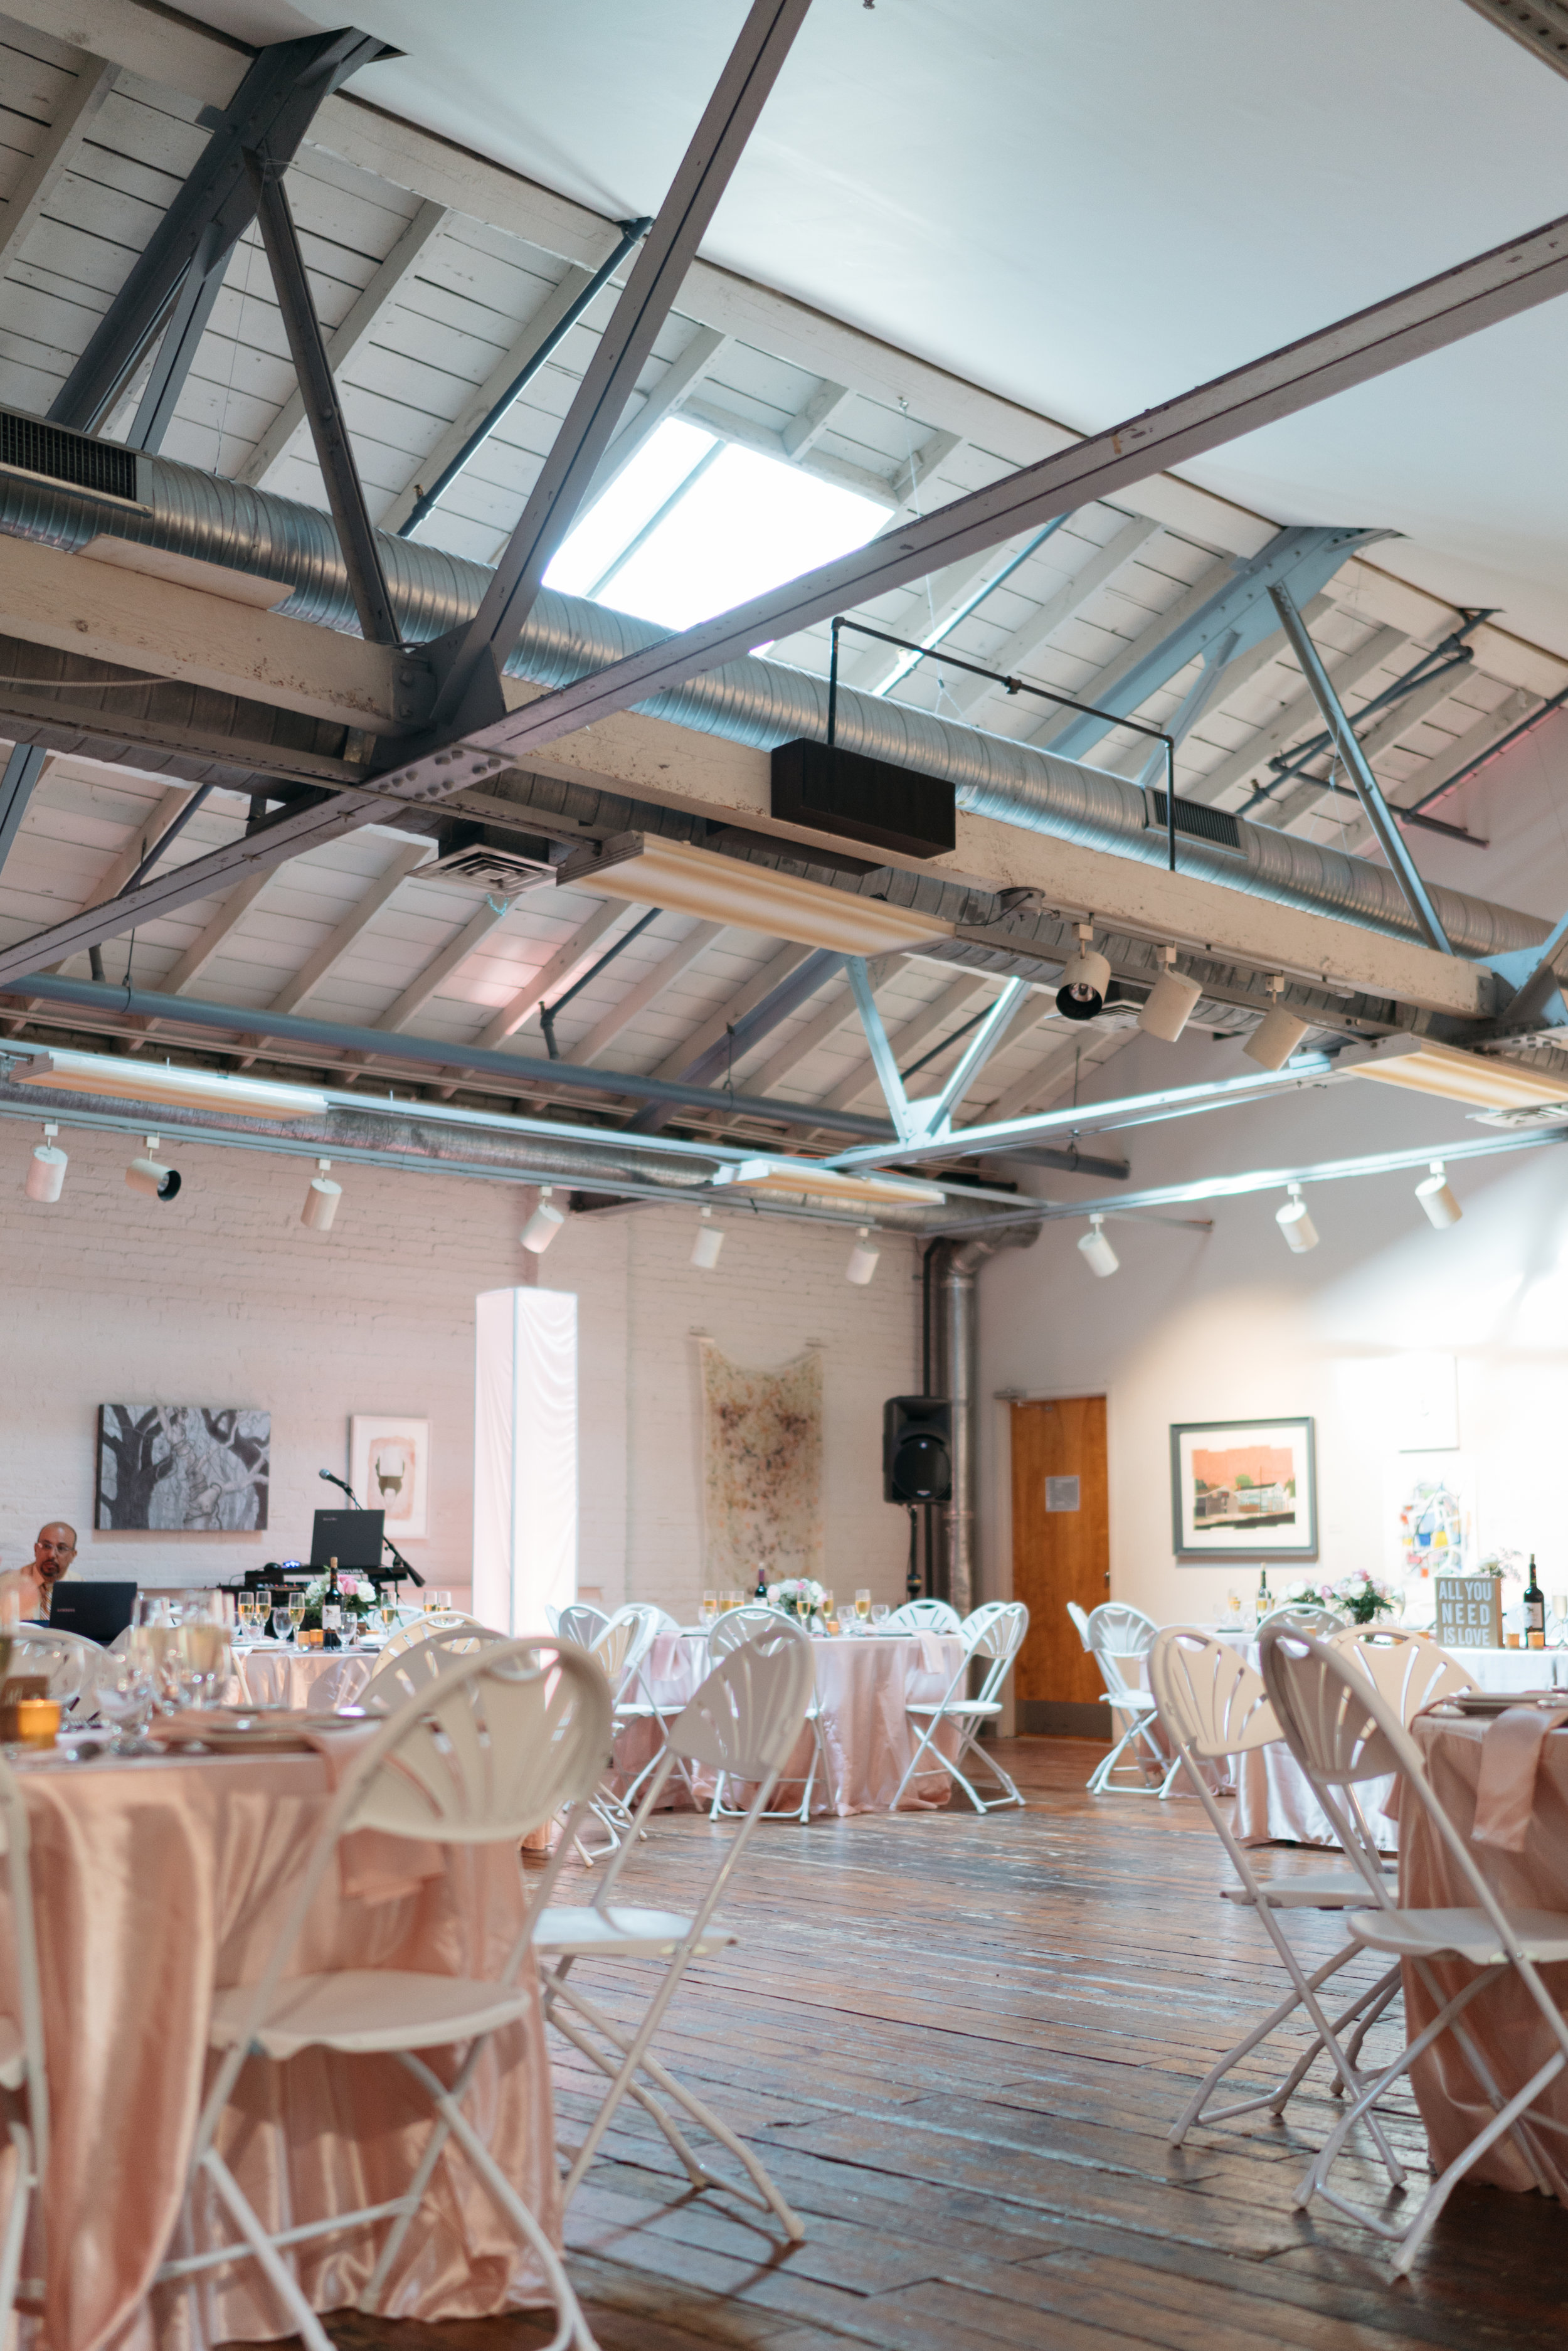 I love the skylight- it brought in the beautiful natural light during our ceremony. We weretotally okay with the white ceiling and exposed beams since we liked rustic venues- we were hoping for something with character. We loved everything about the lighting (skylight and track lights) except the florescent lights- which were not a big deal, we just didn't use them. The wooden floors were a dream as well- we didn't want to ruin the look or charm by adding a dance floor-we teetered back and forth on it and in the end I'm so glad we didn't get one!